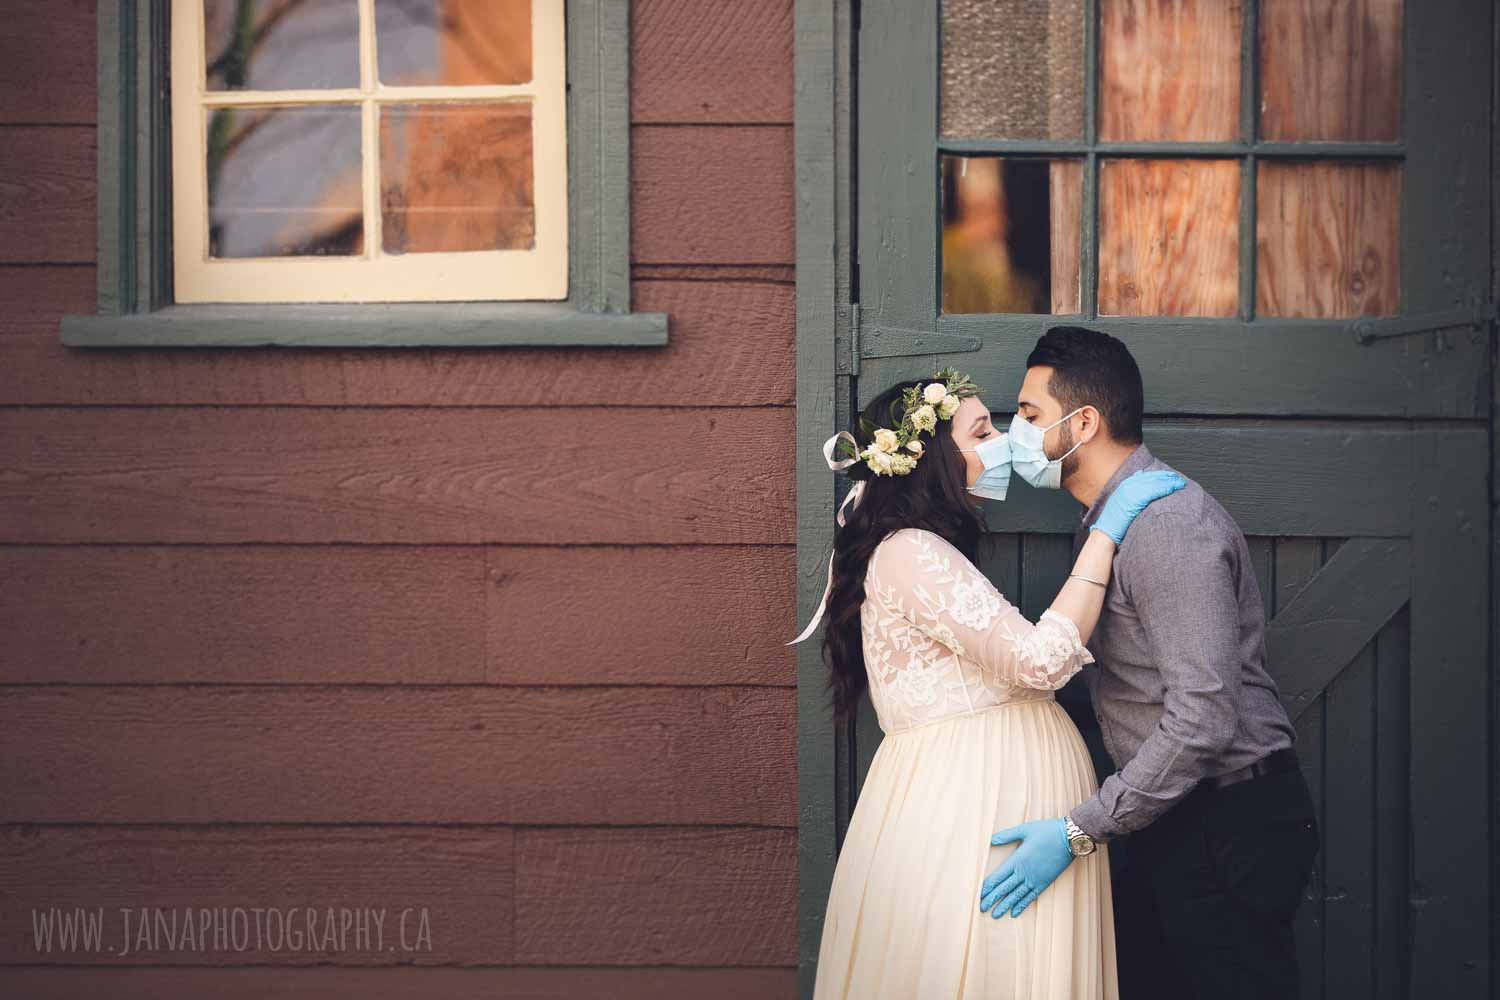 maternity photography outdoor during covid 19 - couple wearing face mask